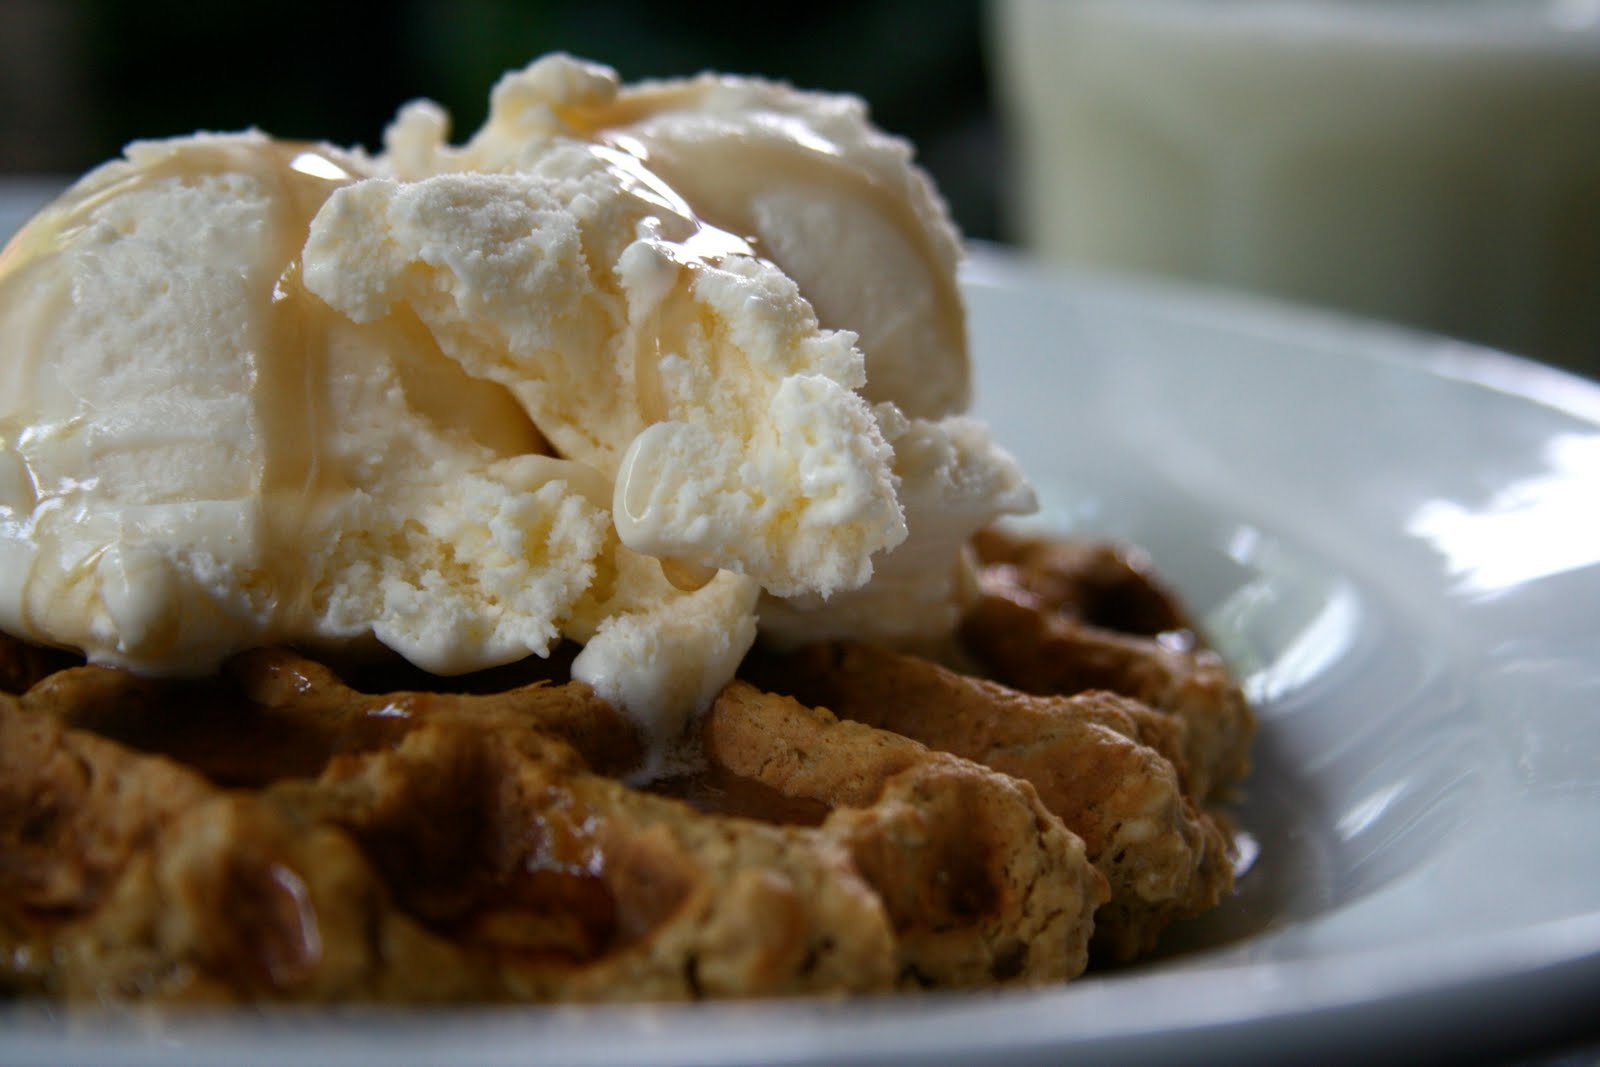 Celebration Dinner and Oatmeal Peanut Butter Waffles!